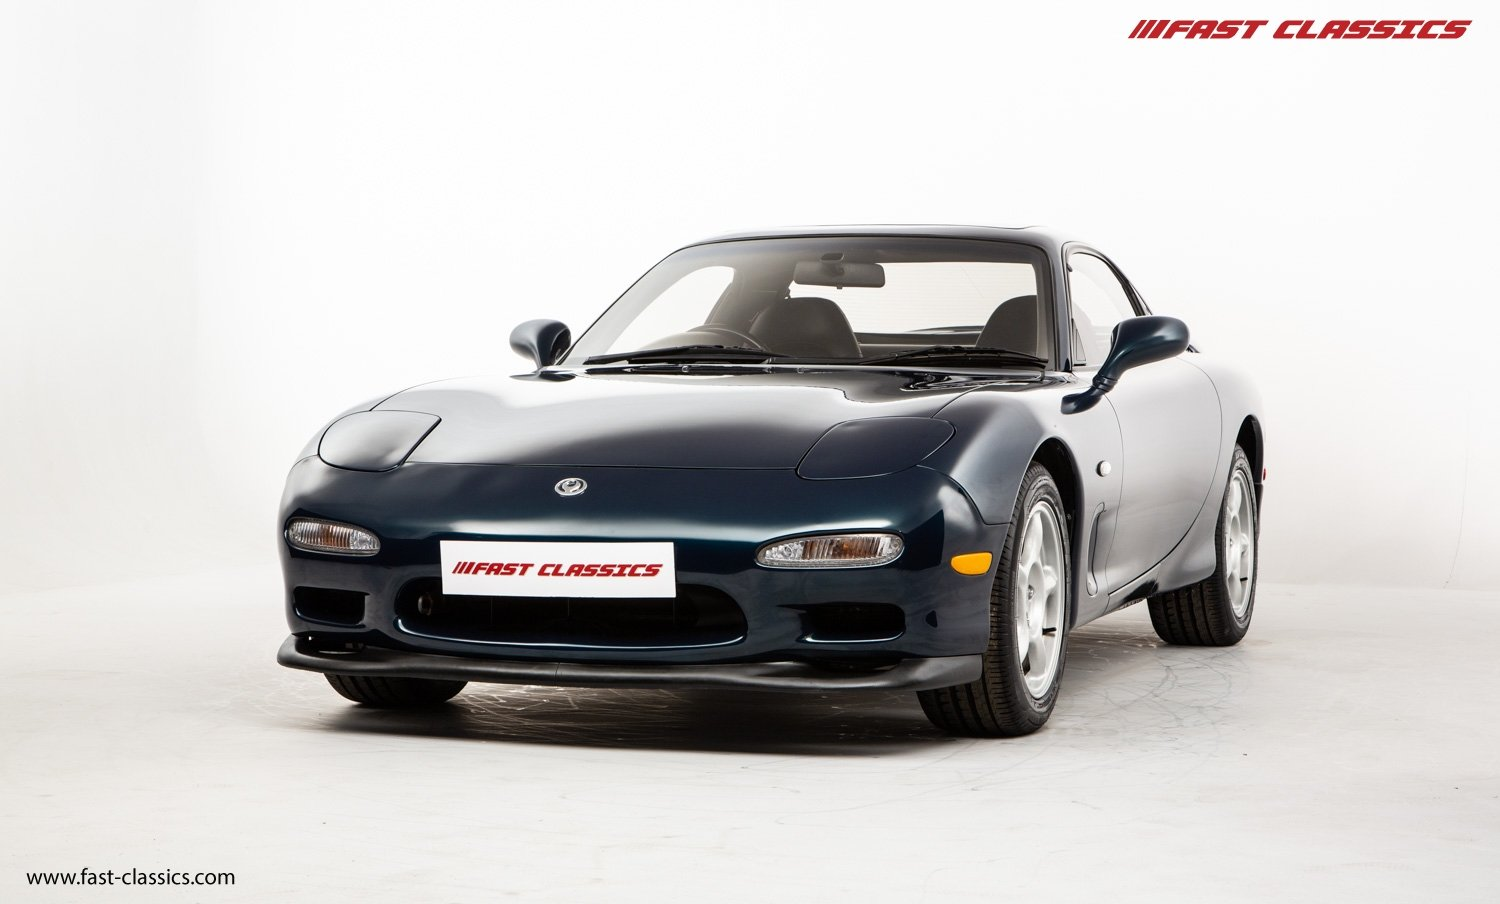 1993 MAZDA RX-7 FD // FAMILY OWNED // 26K MILES // 1 OF 210 UK DE For Sale (picture 2 of 23)